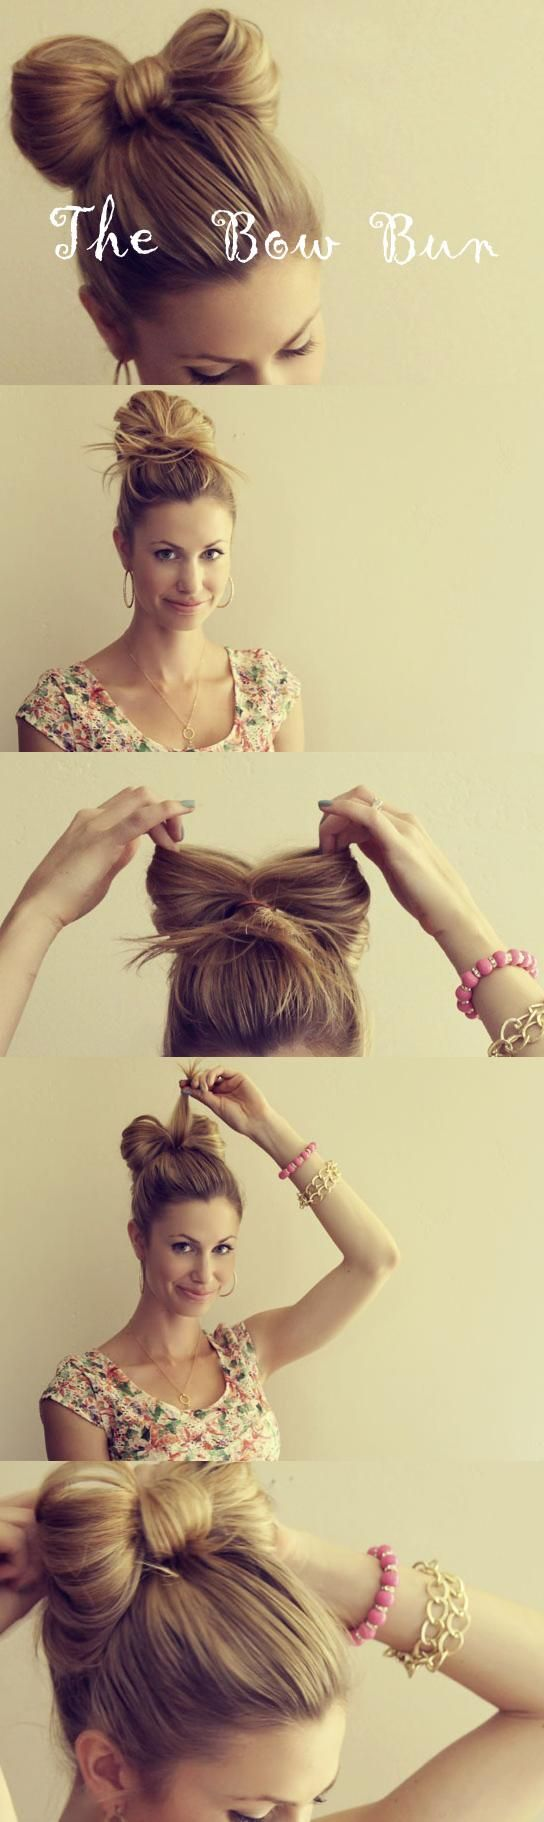 The Bow Bun: Hairbows, Cute Bows, Bows Buns, So Cute, Long Hair, Buns Tutorials, Hairstyle, Hair Bows, Hair Style